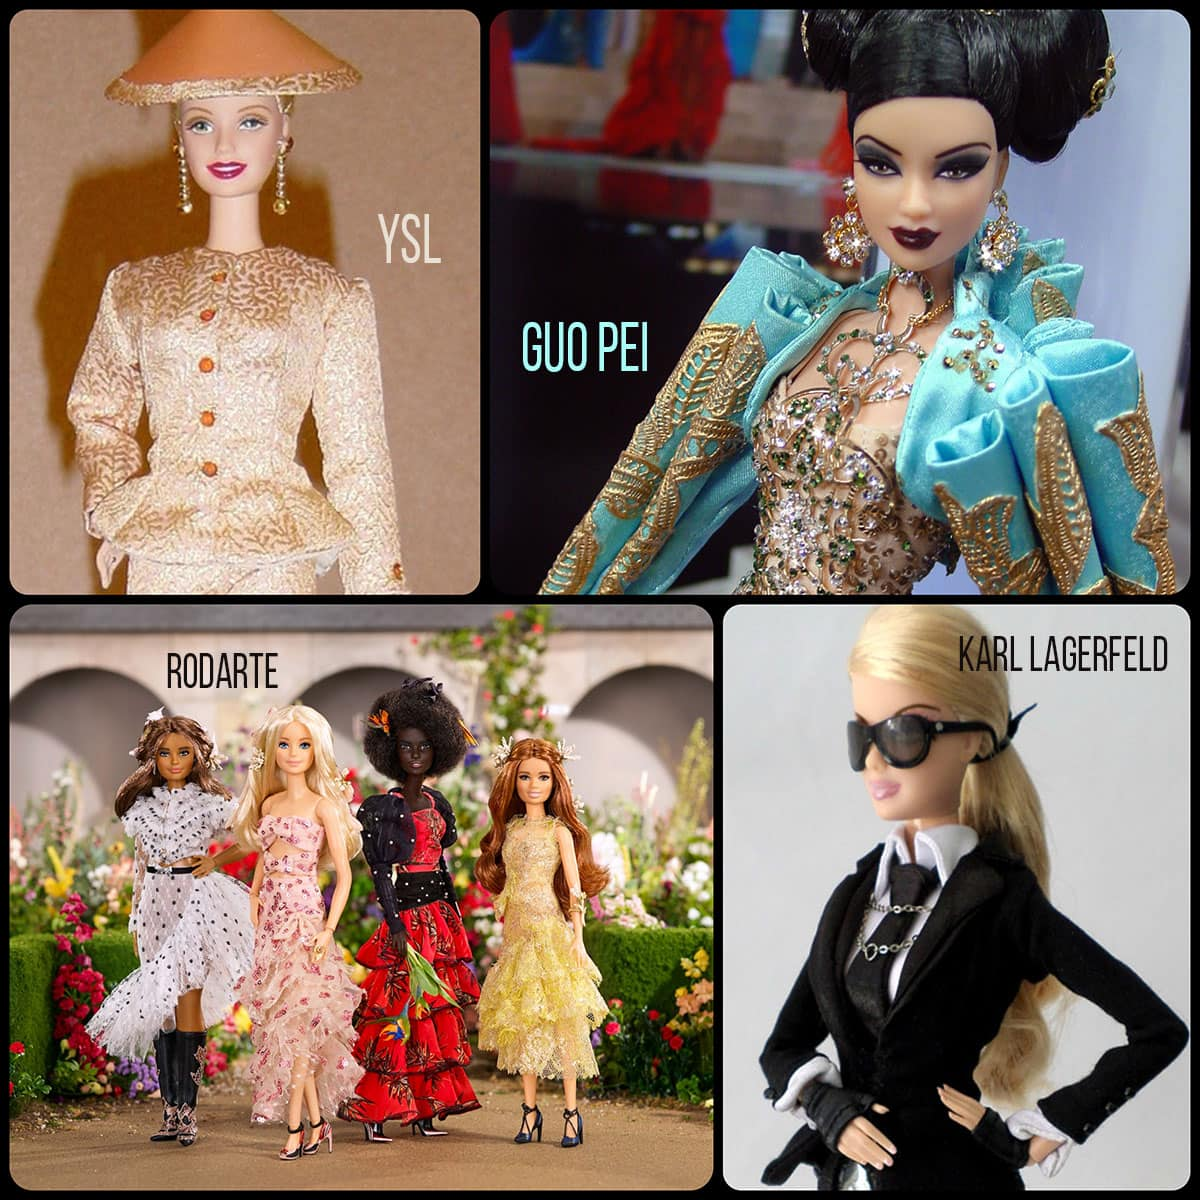 Barbie by Rodarte, Karl Lagerfeld, YSL and Guo Pei by Runway Magazine